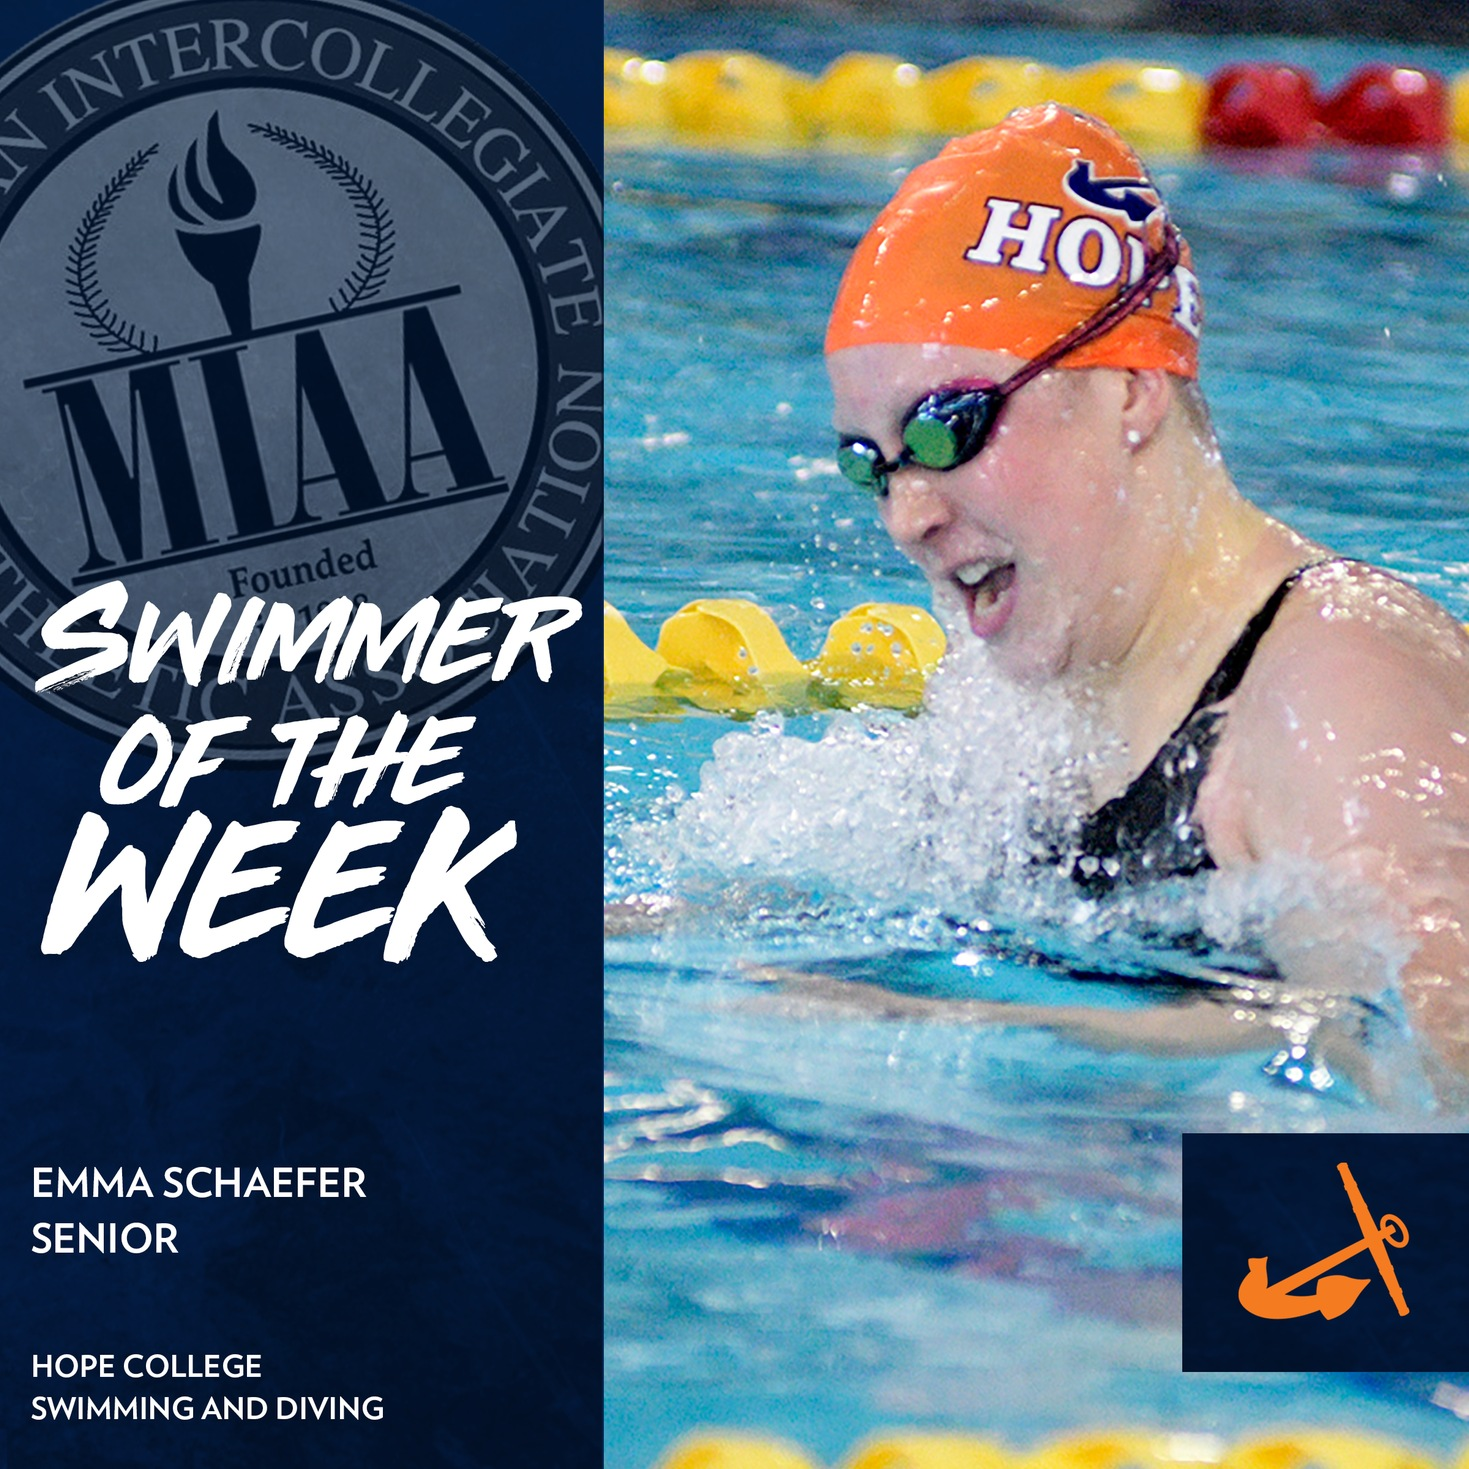 Emma Schaefer swims